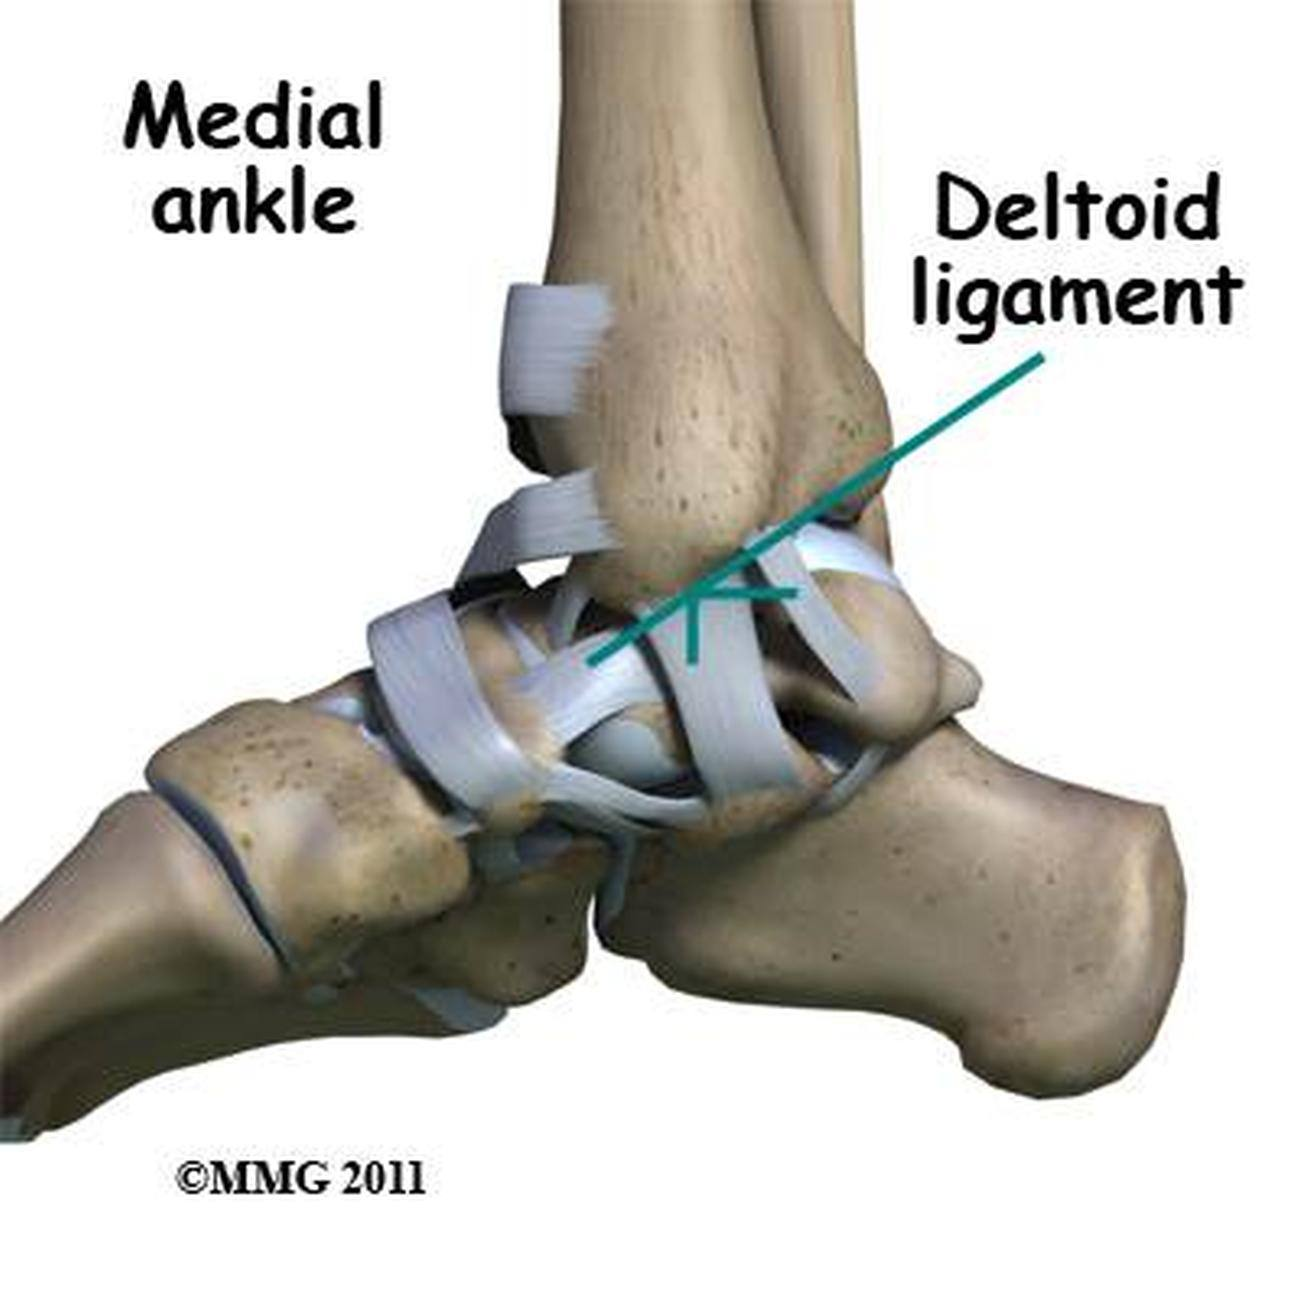 Pictures Of Ankle Joint, Deltoid Ligament